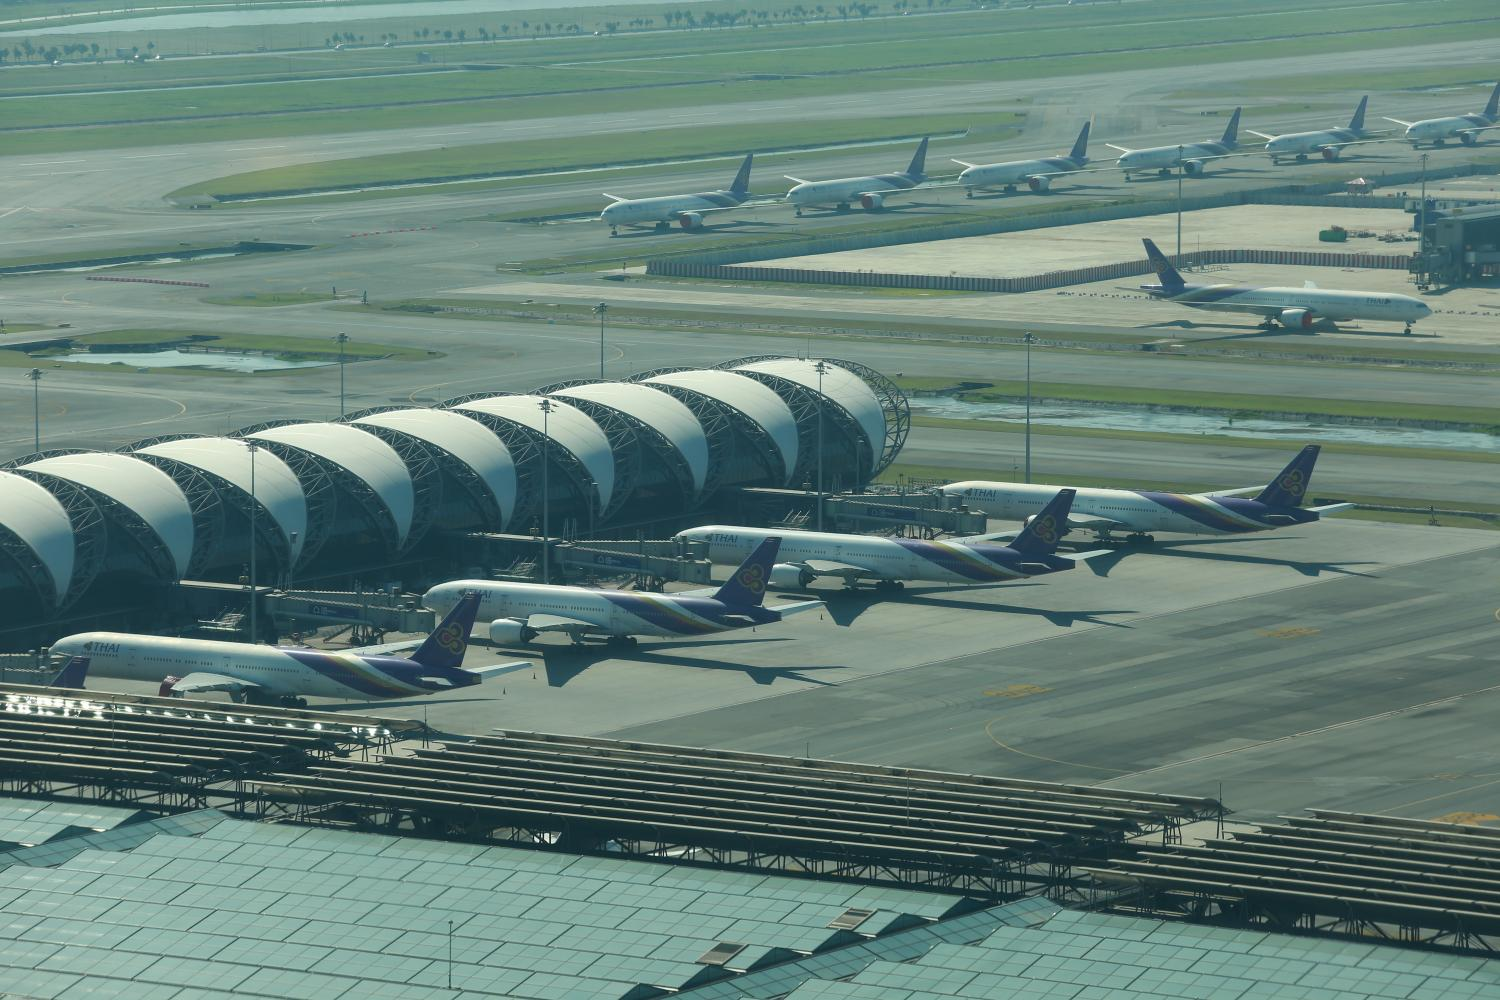 A fleet of Thai Airways airplanes are parked at Suvarnabhumi international airport. The aviation sector has been hard hit by the Covid-19 pandemic. Somchai Poomlard